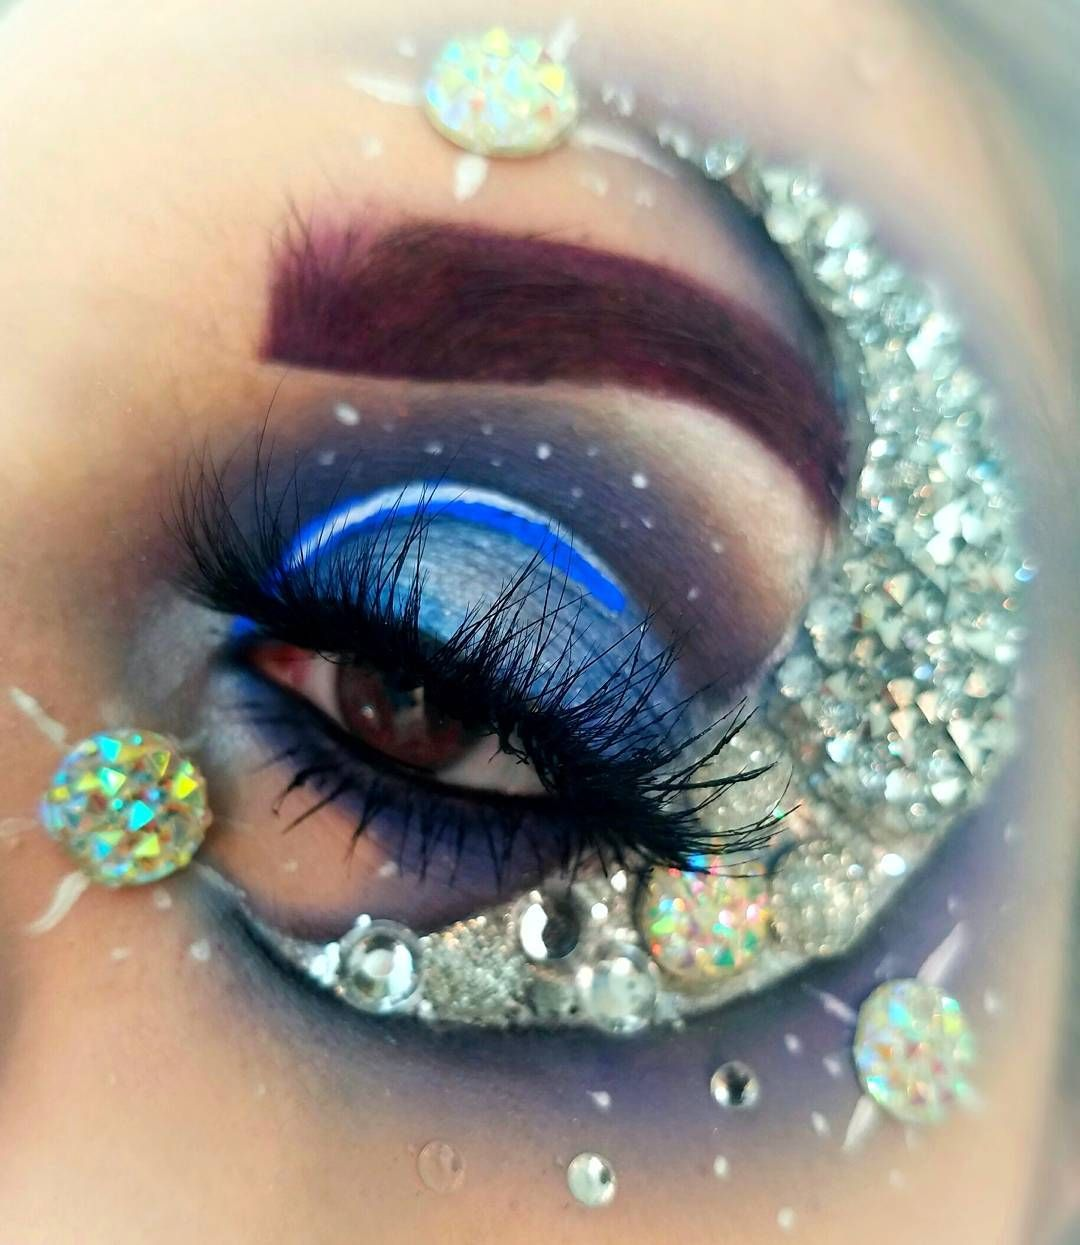 476 likes, 25 comments - brittany shae (@brittany_shae_mua) on